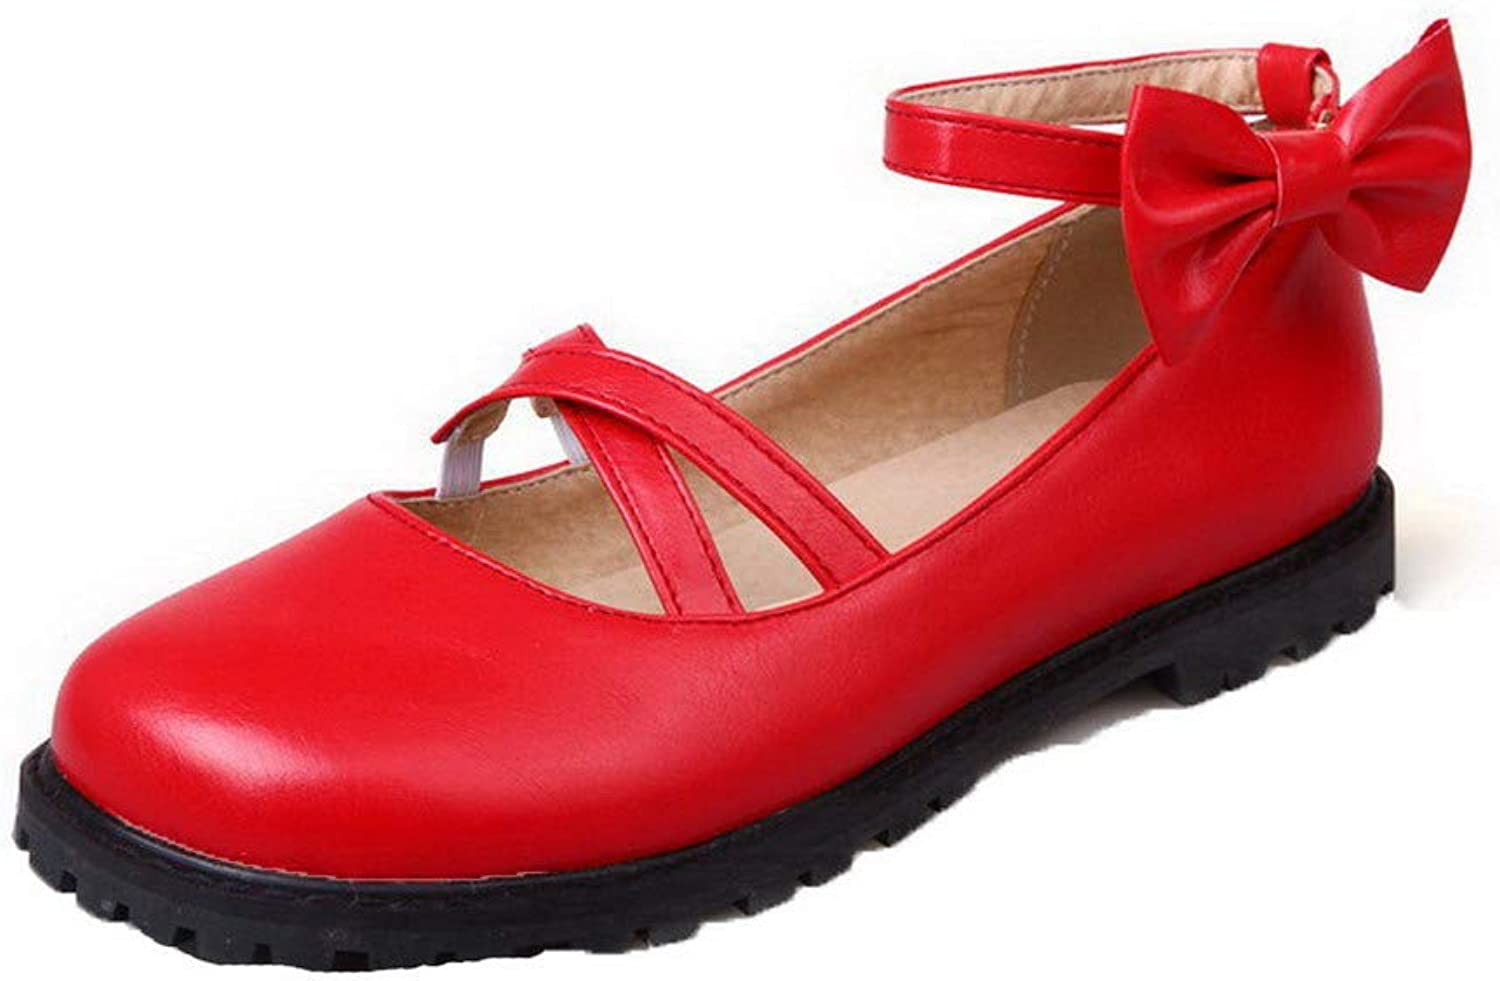 WeenFashion Women's Solid Pu Low-Heels Buckle Round Toe Pumps-shoes, AMGDX005755